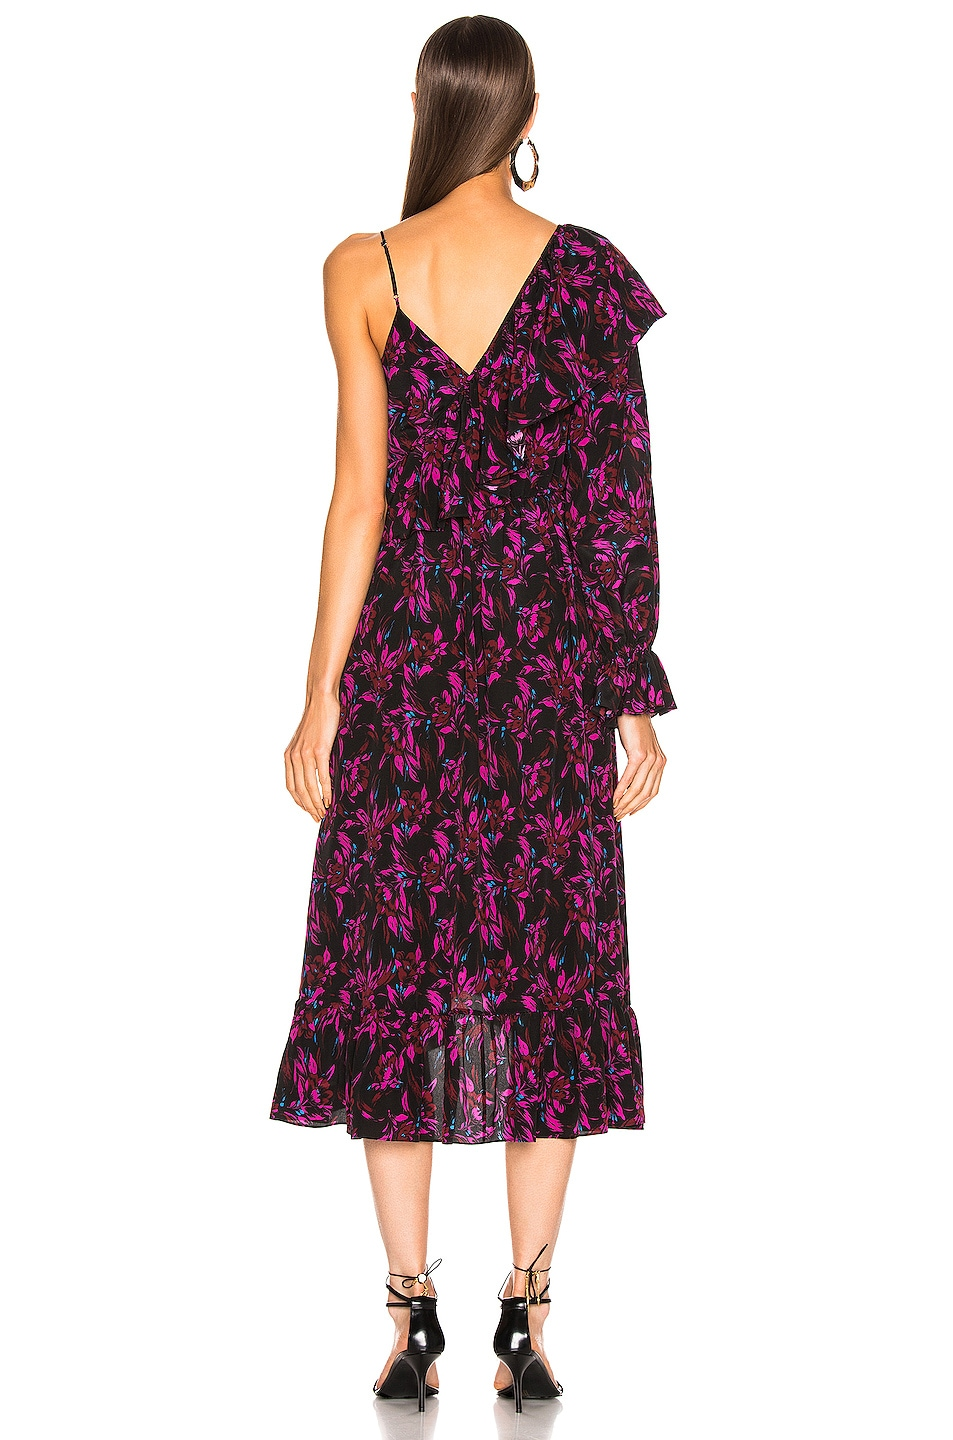 Image 4 of Les Reveries Asymmetrical Ruffle Wrap Dress in Wispy Floral Black